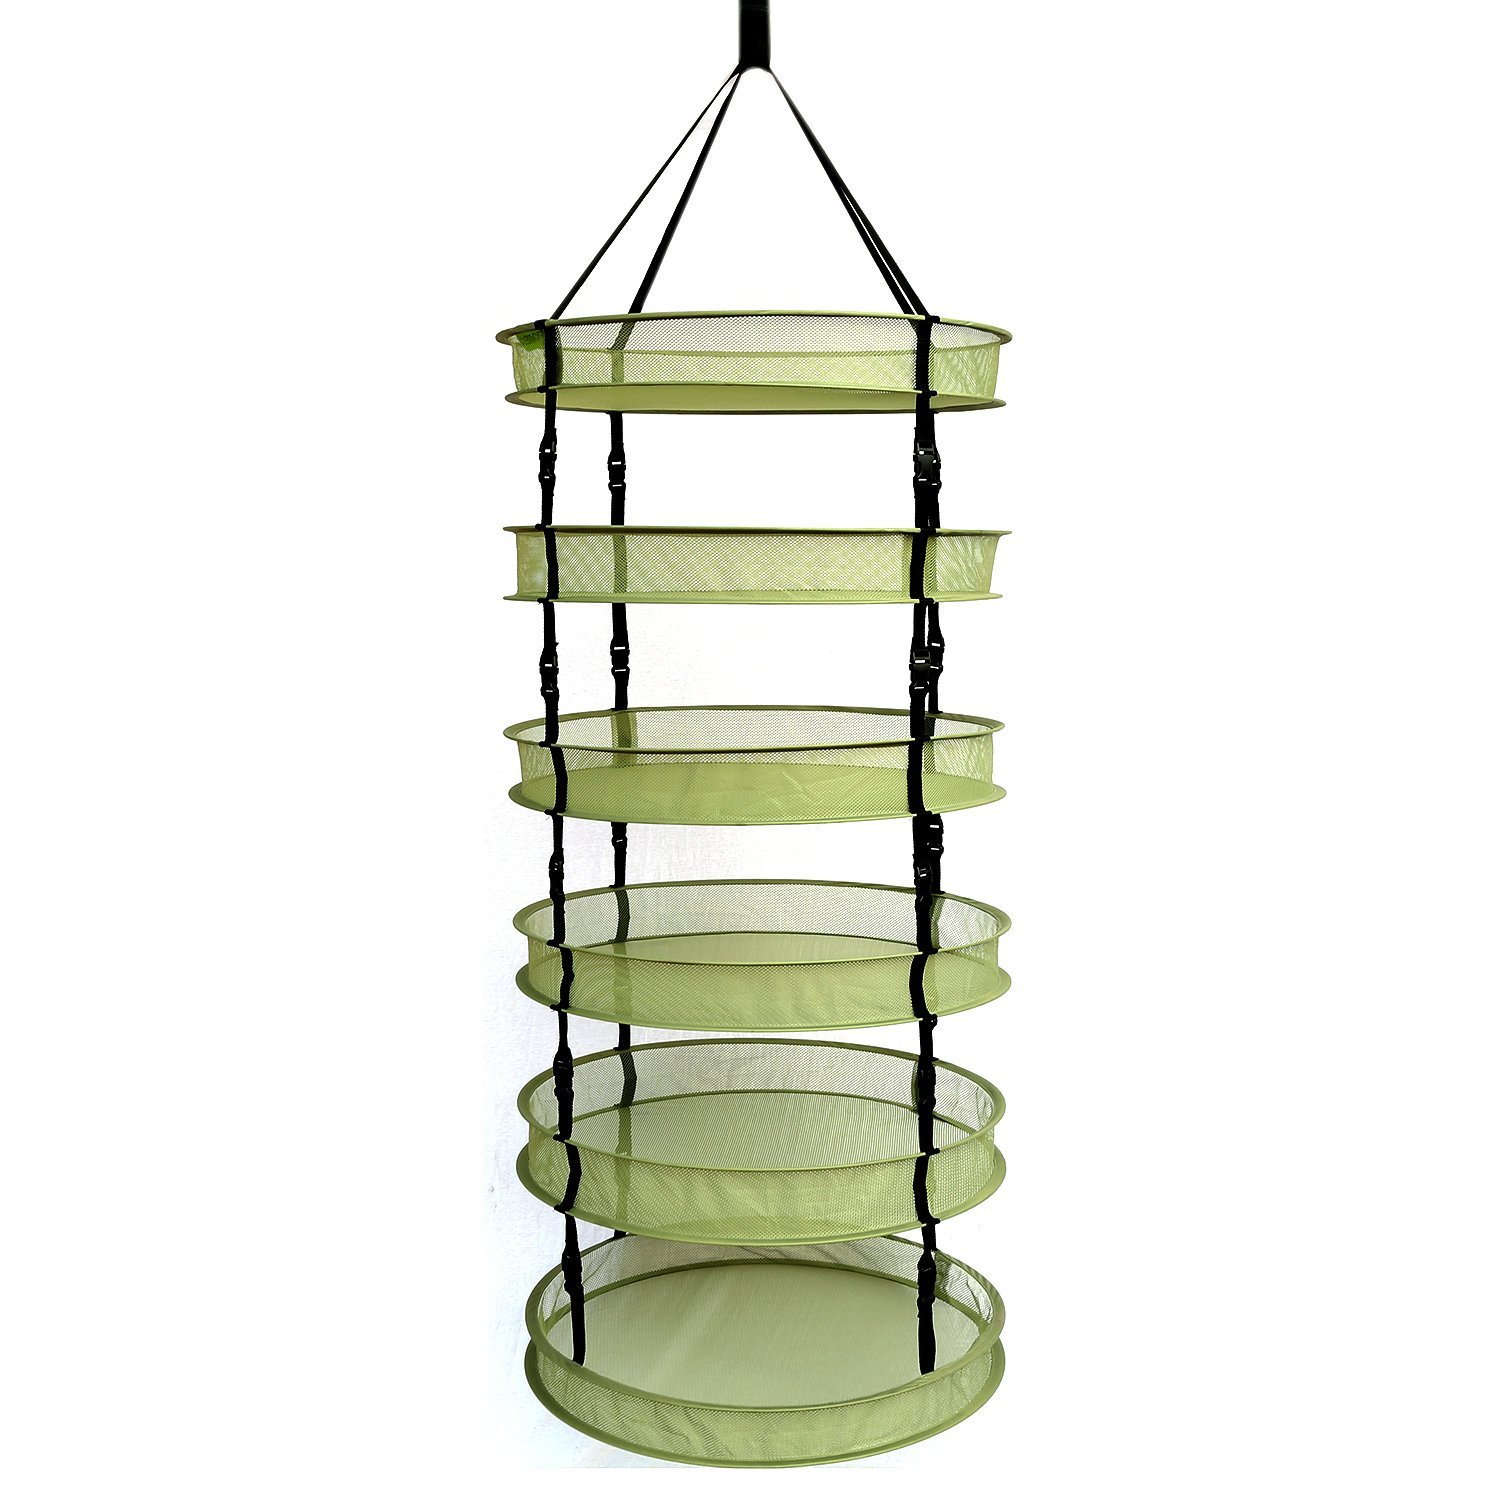 IPOMELO Hanging Herb Drying Rack Dry Net 2ft 6 Layer Clip-On Collapsible Green Mesh